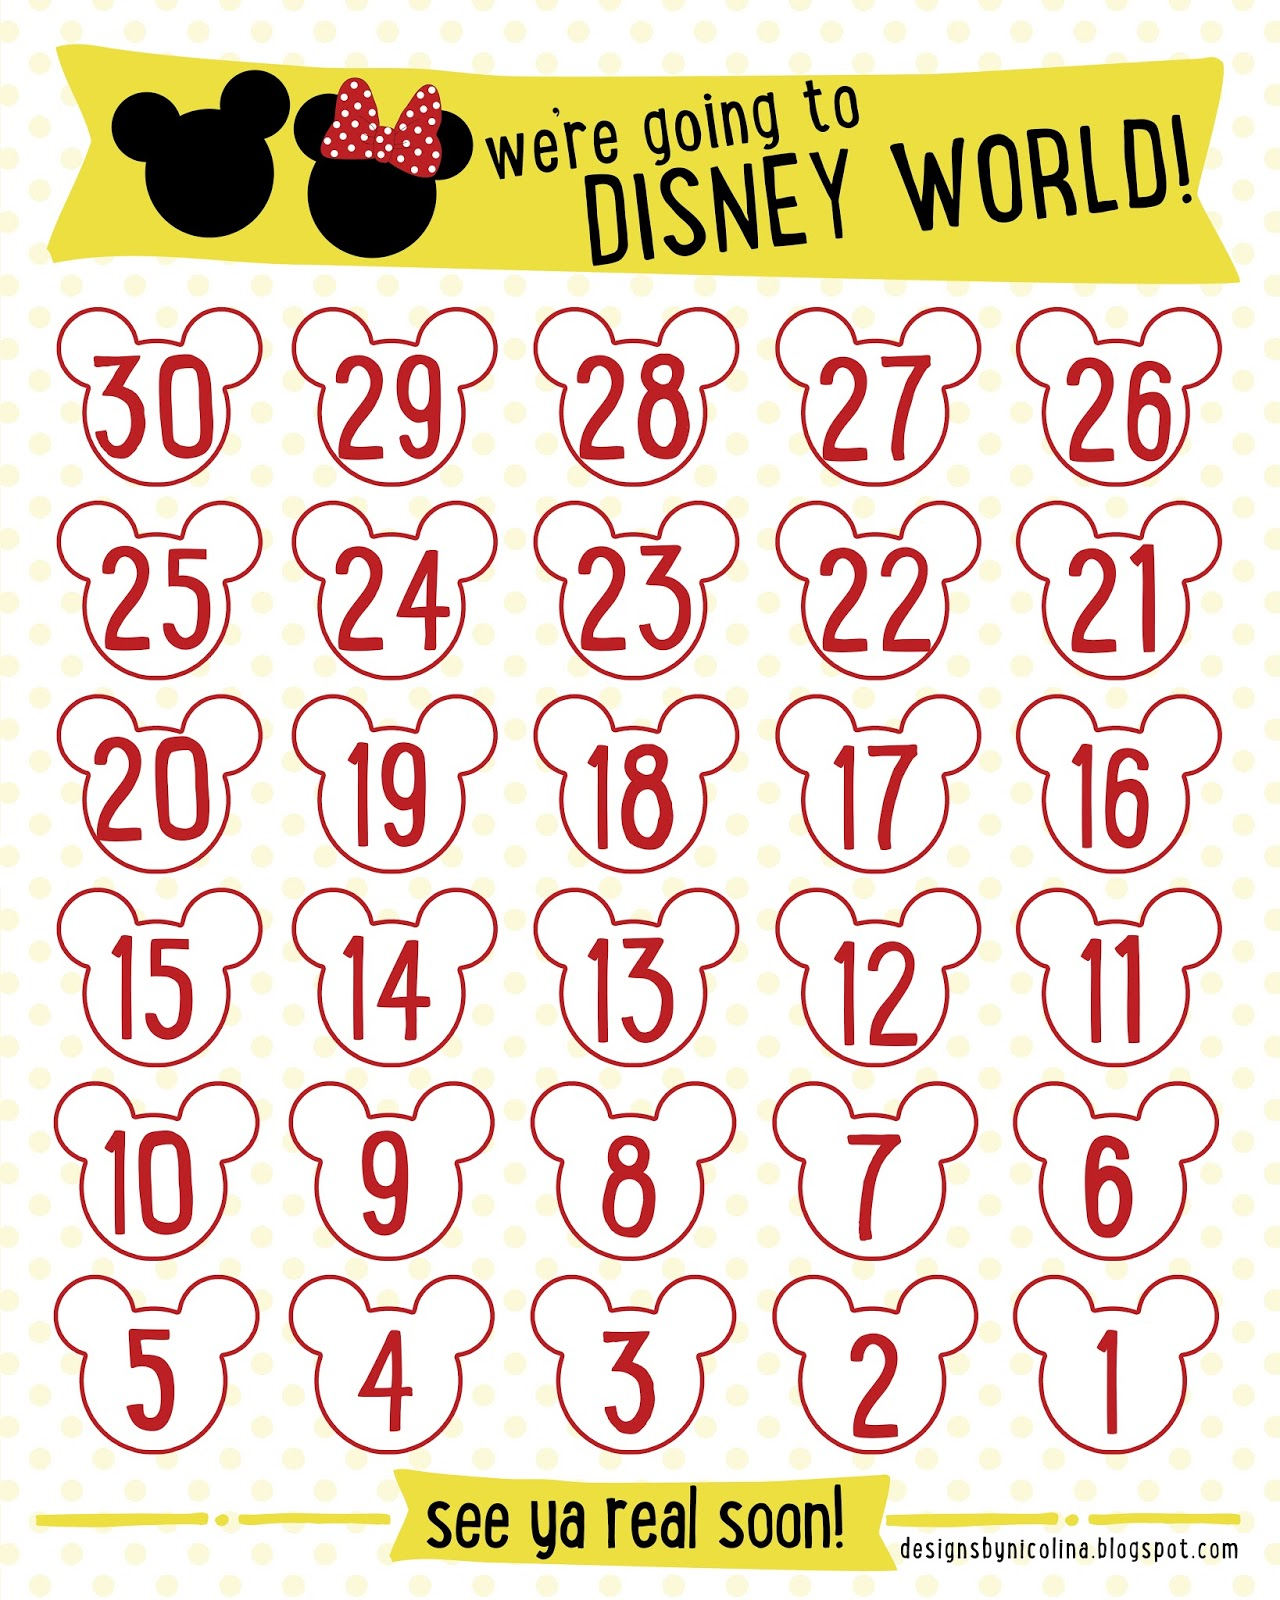 Disney Countdown Calendar Printable | New Calendar Template Site